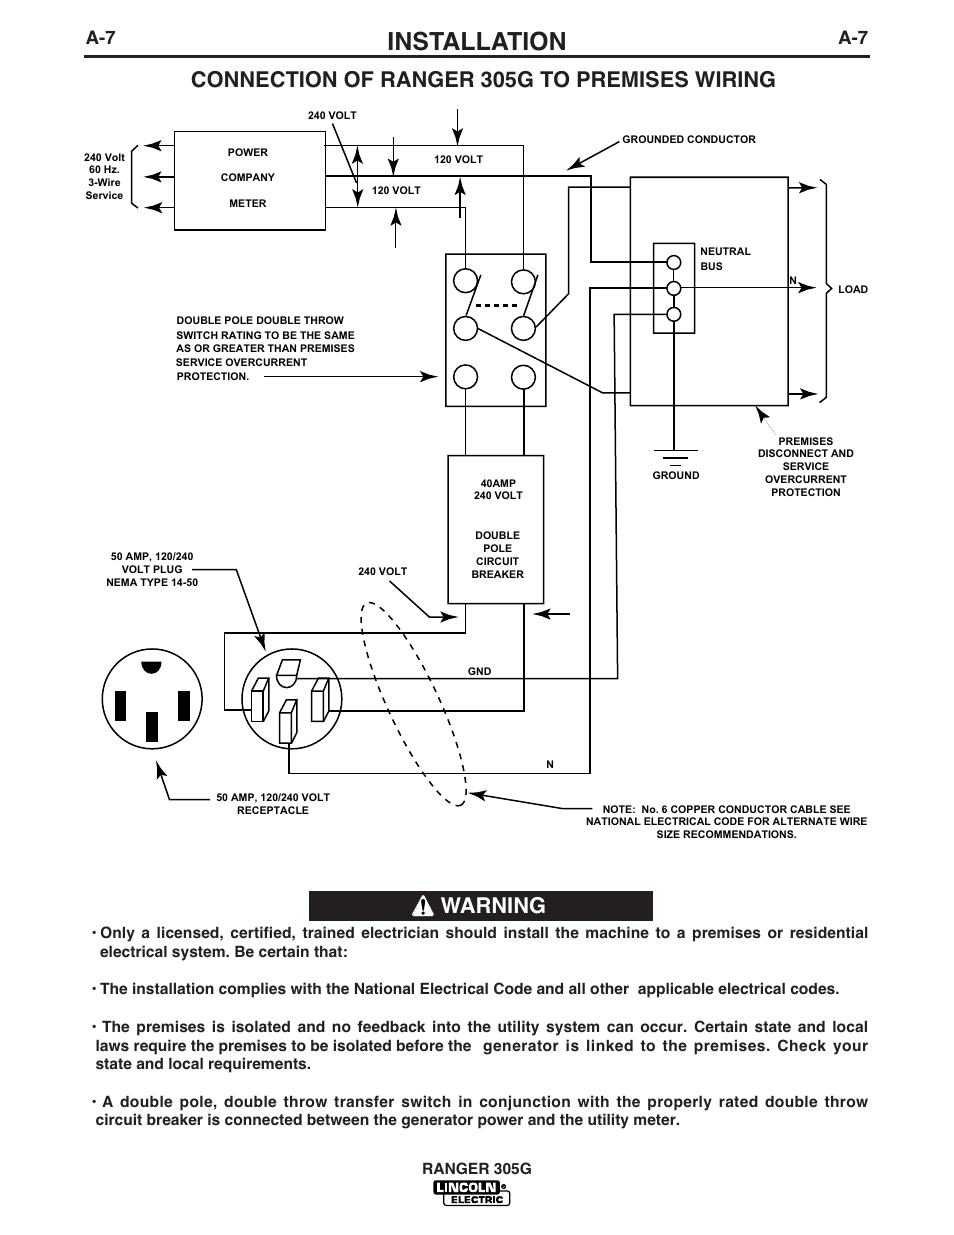 Lincoln 305g Wiring Diagram Library Electric Wire Installation Ranger User Manual Page 15 49